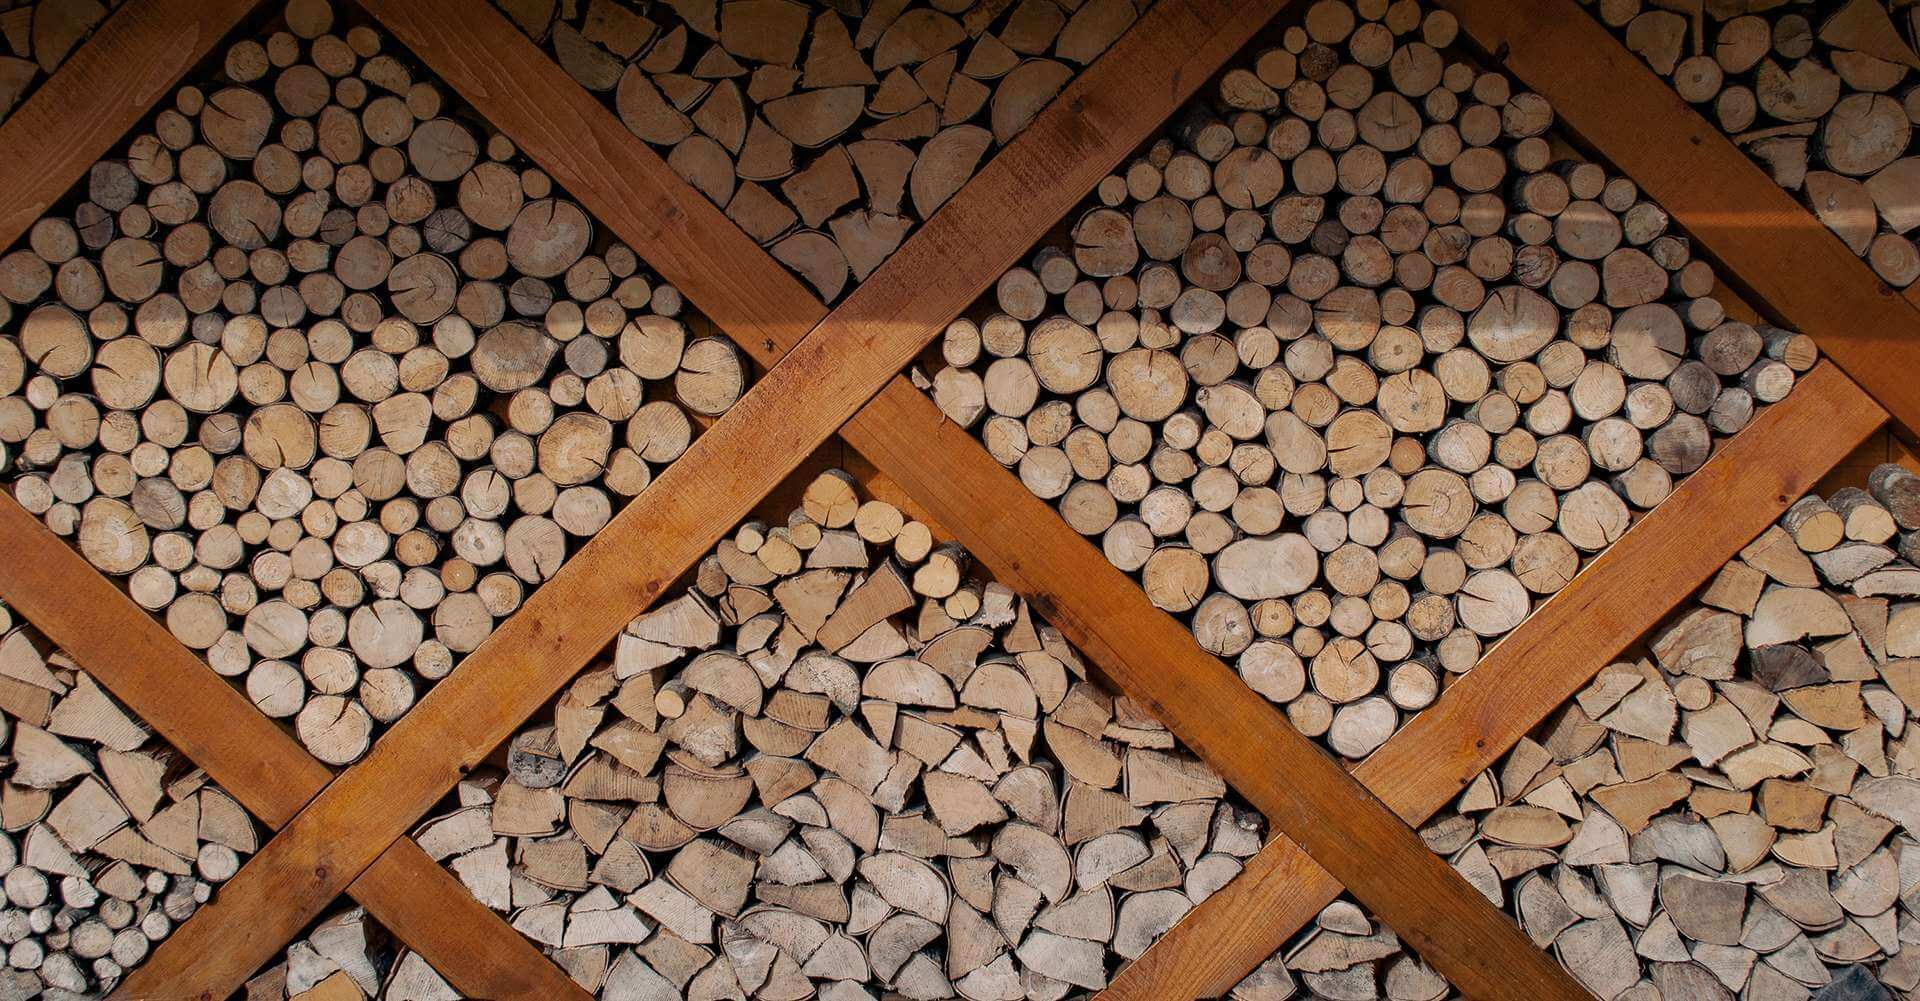 Sawdust Wood Fuels